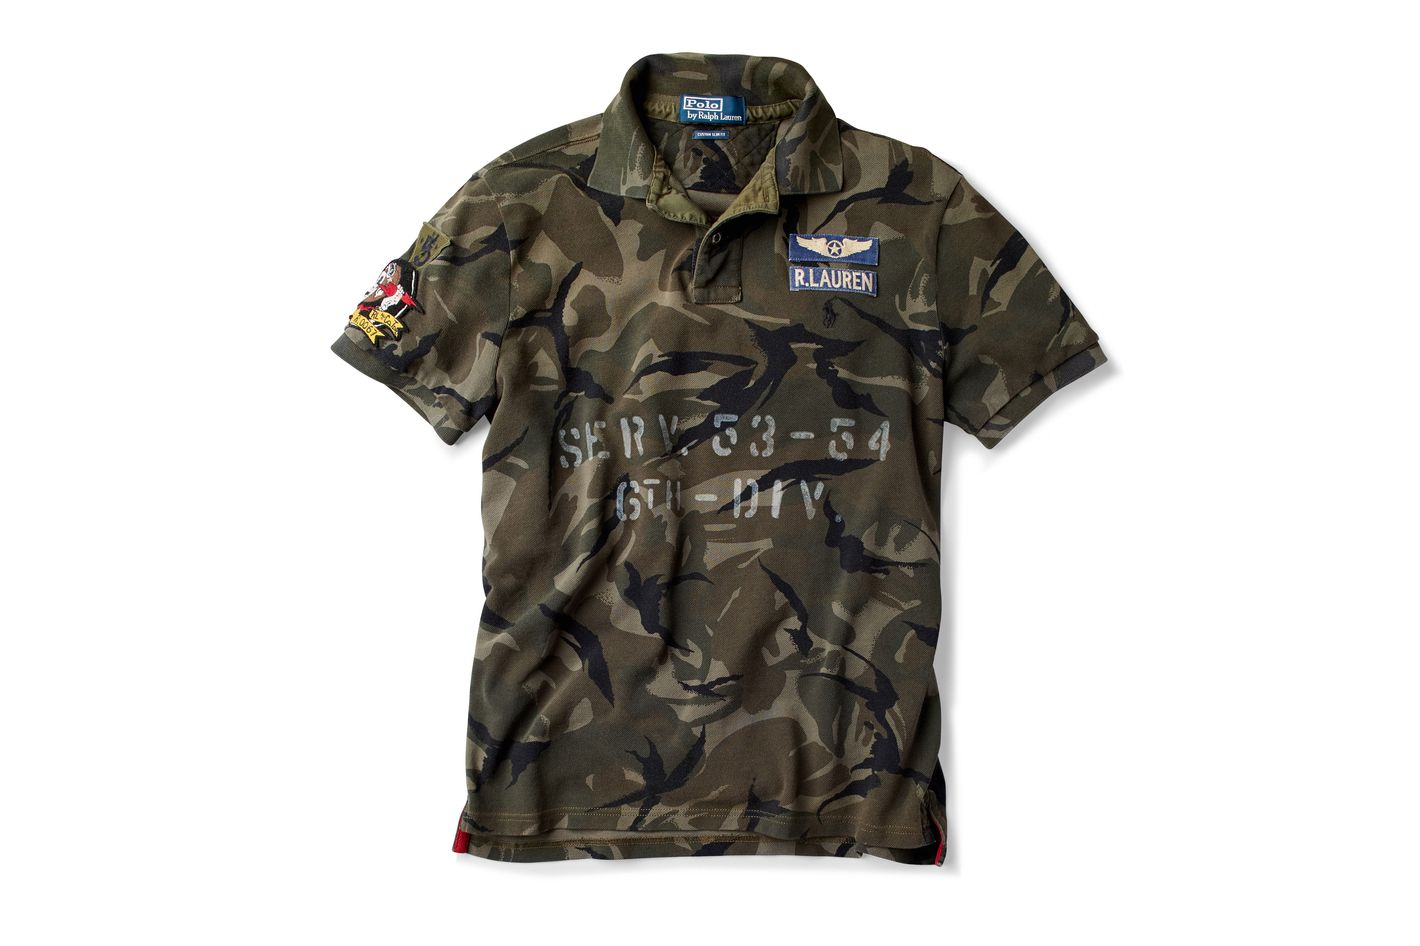 The Military Polo Shirt